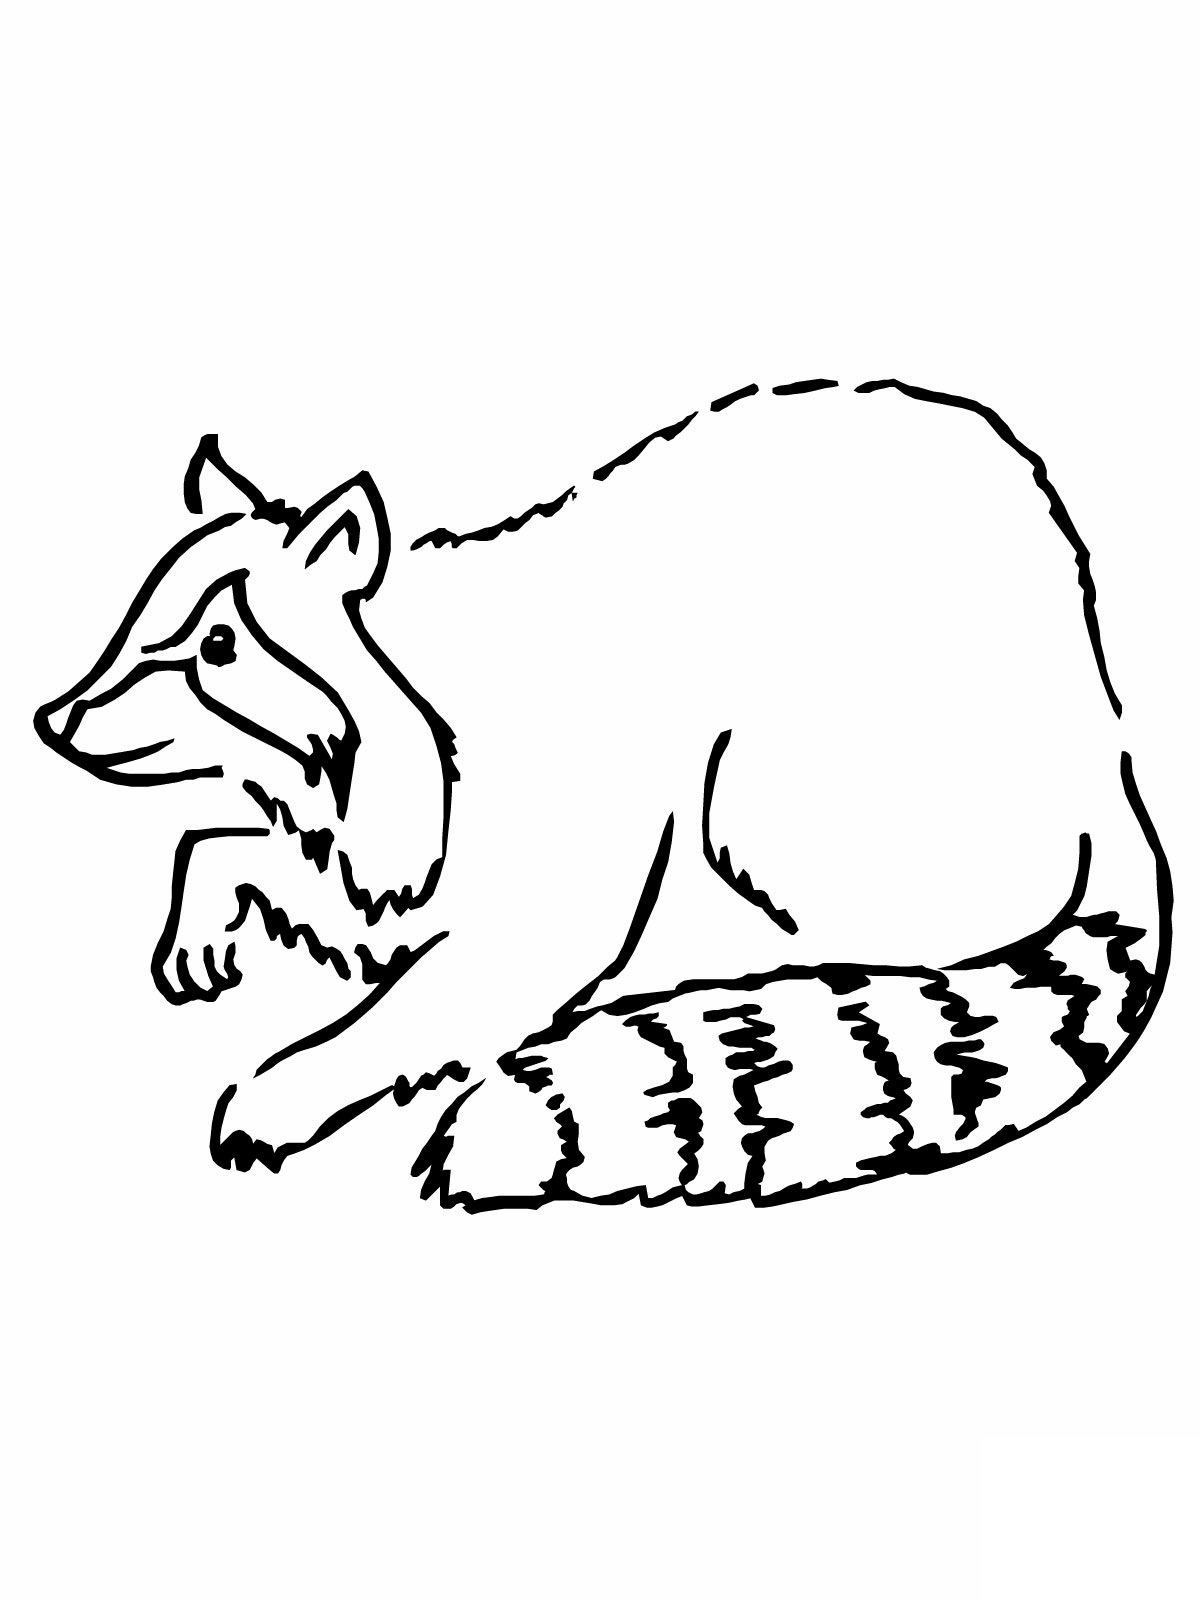 raccoon pictures to print free printable raccoon coloring pages for kids pictures print raccoon to 1 1